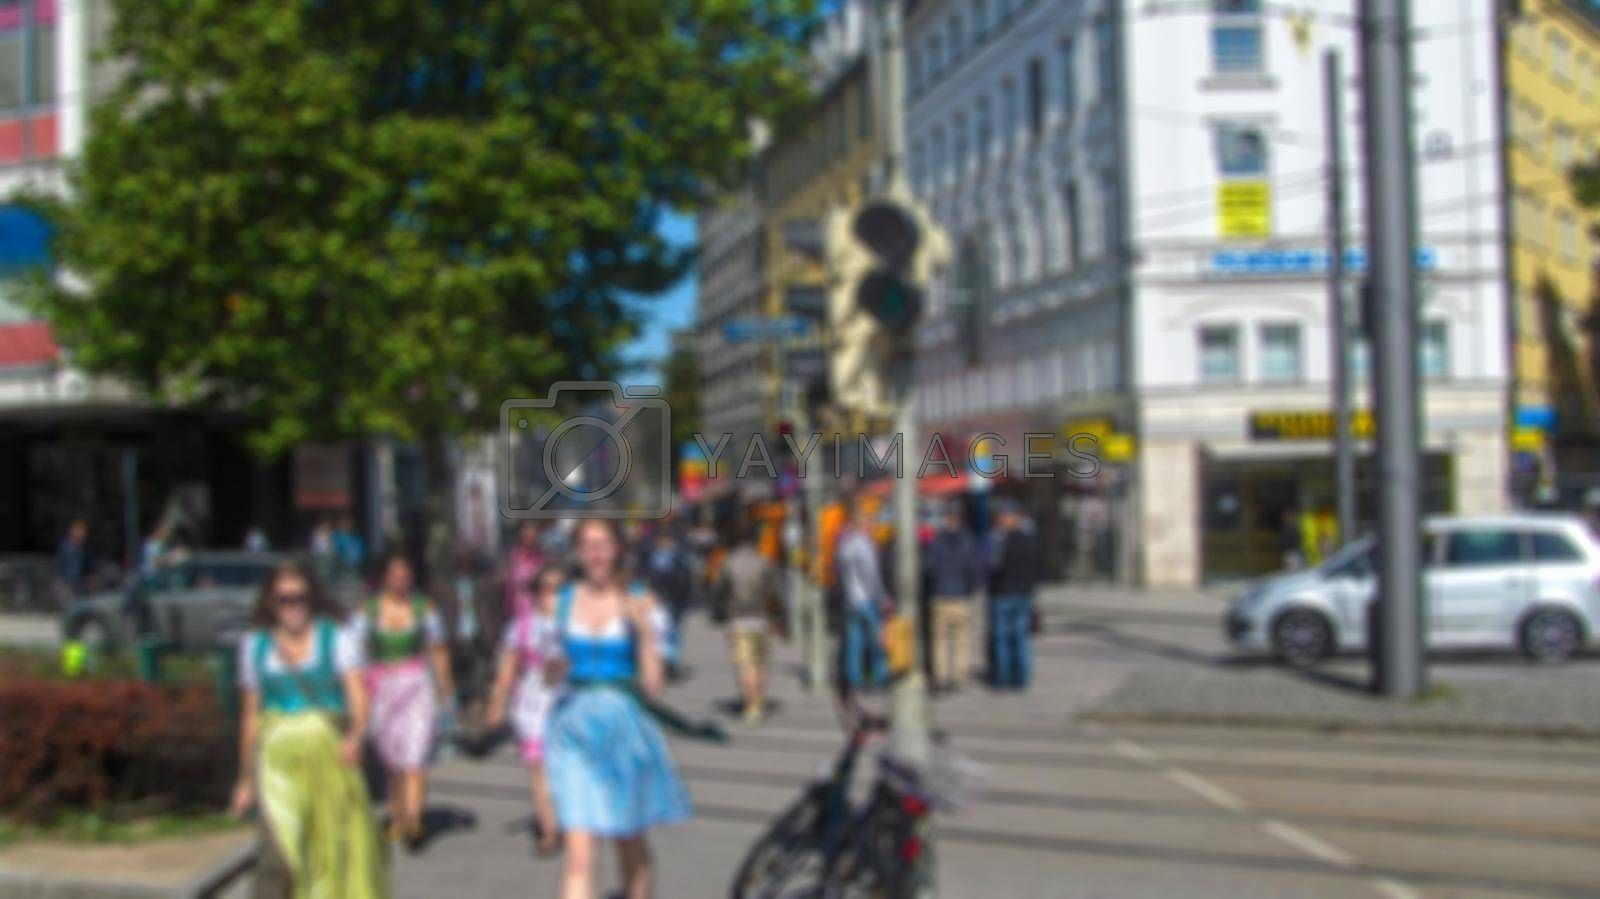 Urban landscape. Creative tourism theme with blur and bokeh for themed posters, banners and screensavers